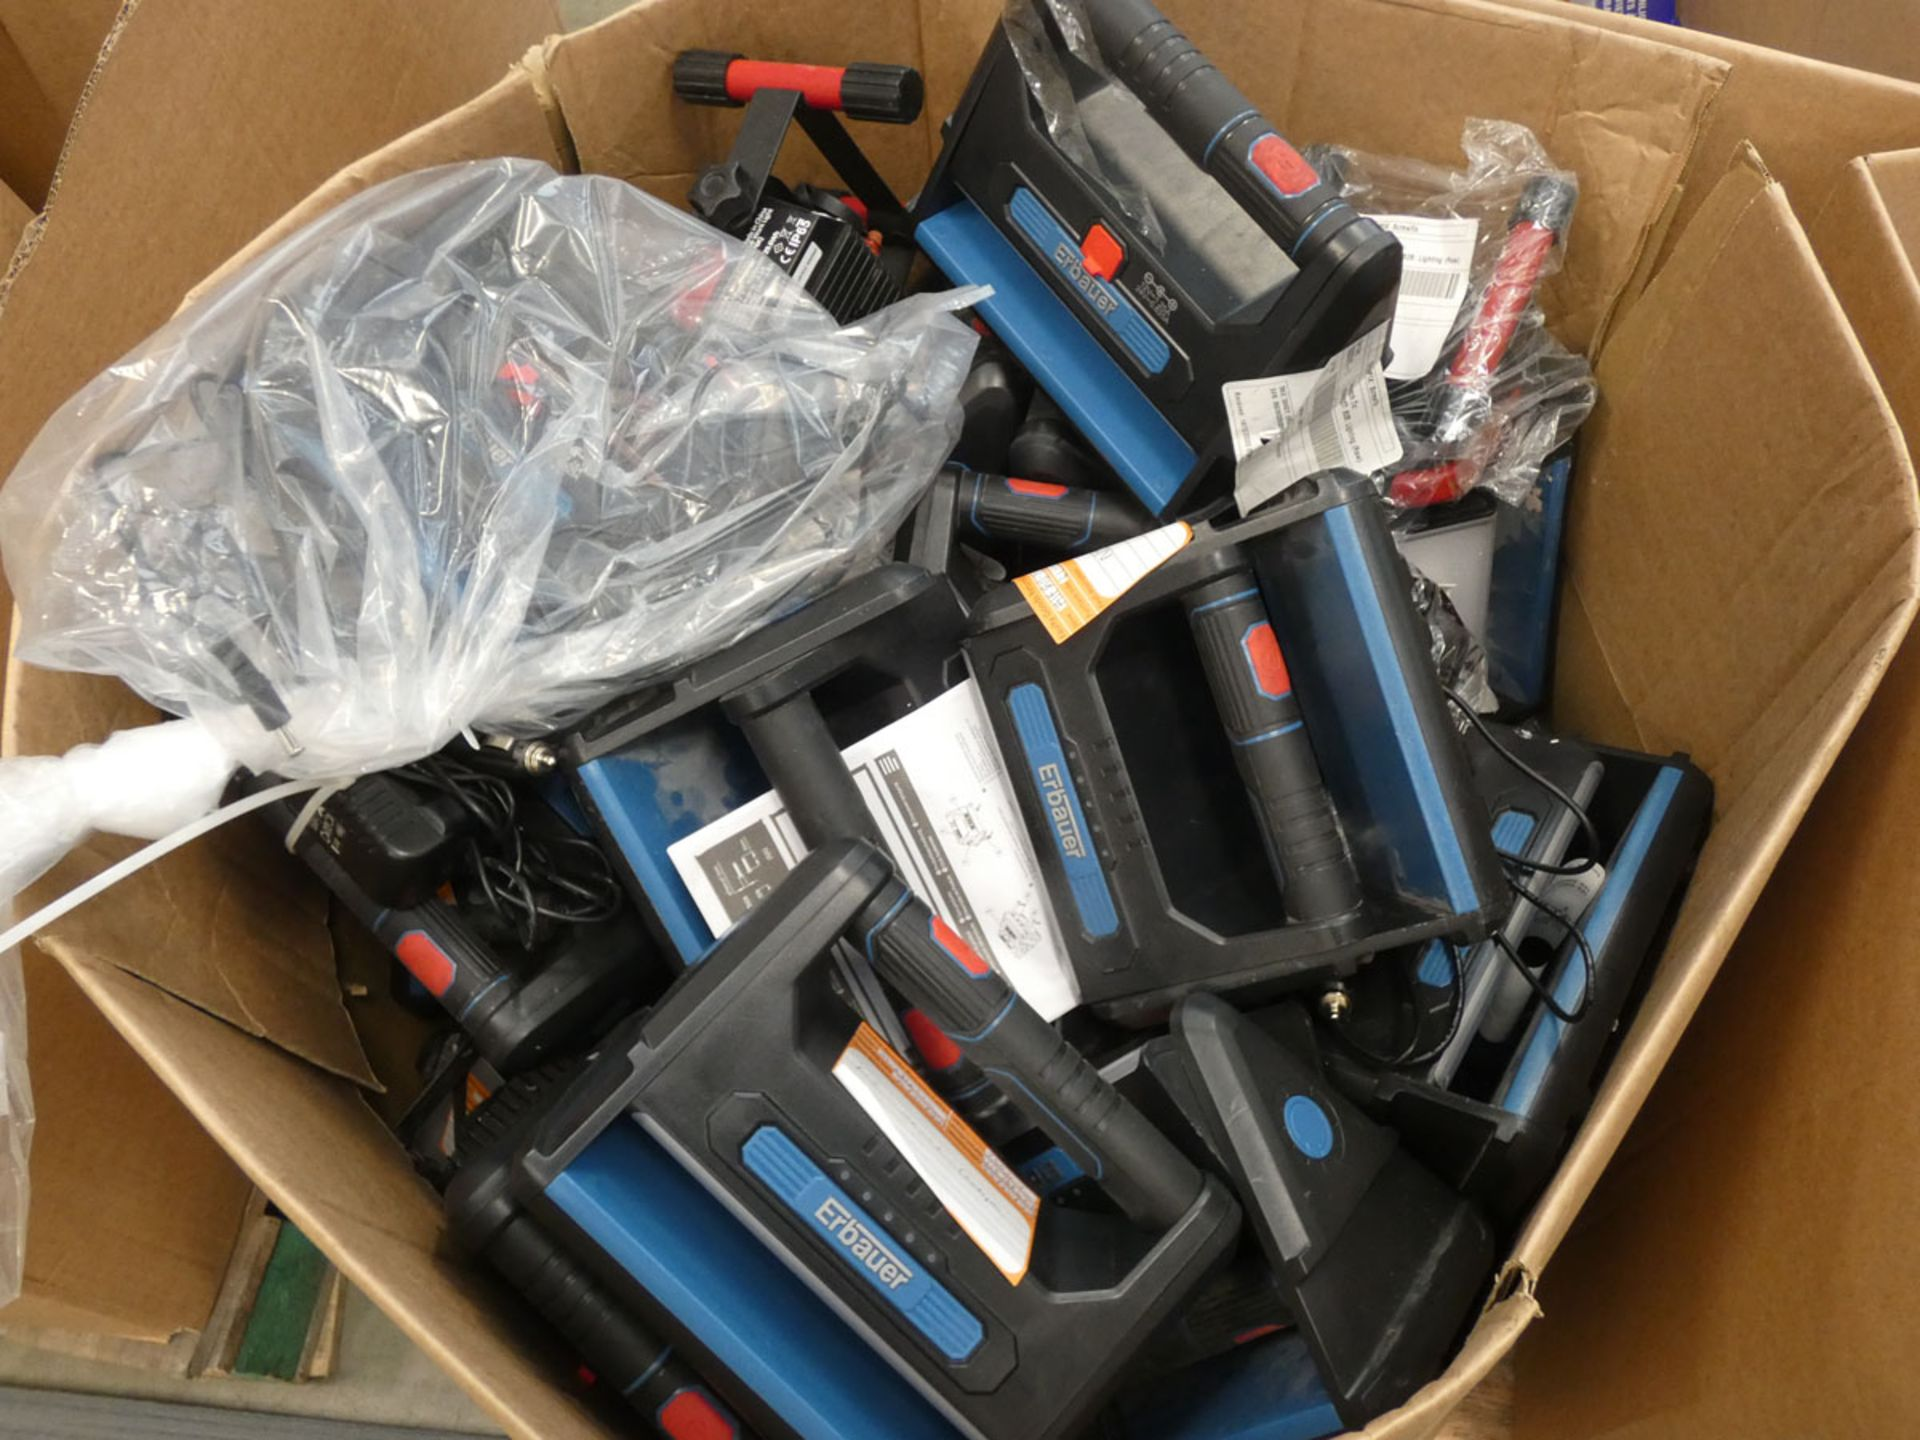 Box of Erbauer rechargeable lights